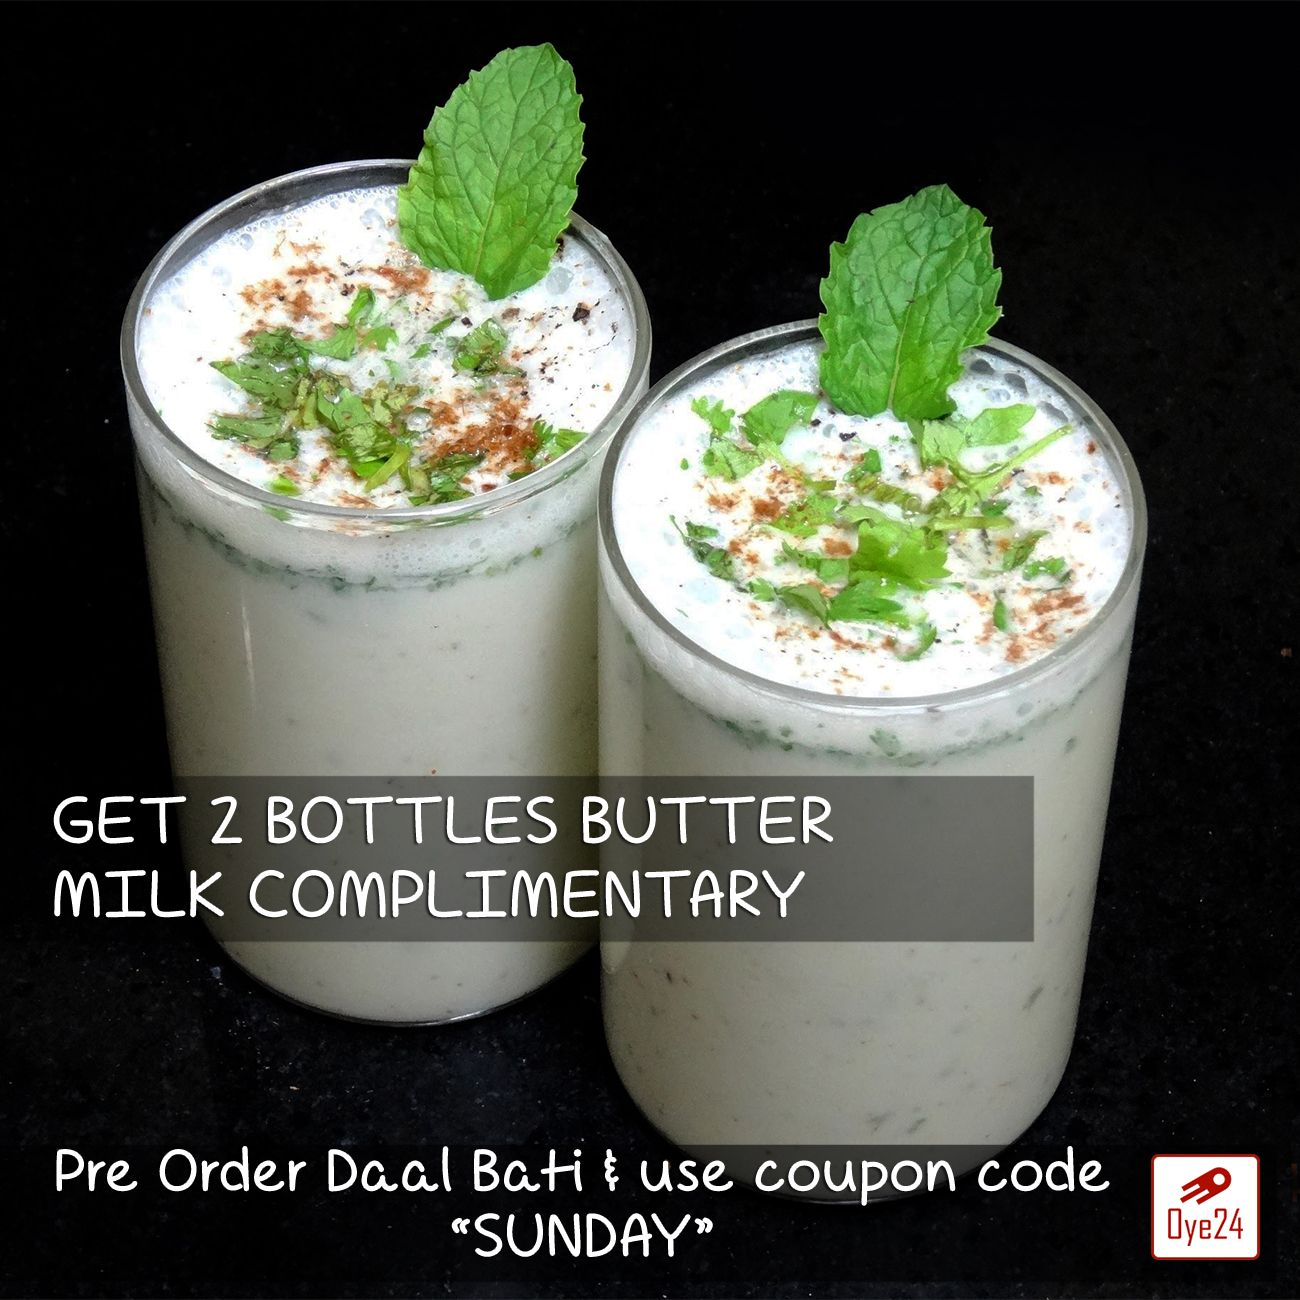 Lets Welcome this Summer with this cool Sunday special offer www.oye24.com or call 0731-4711711 to place order.  #Oye24 #buttermilk #chhach #summer #daalbati #sunday #special #offer #lazy #day #relax #orderonline #freedelivery #indore